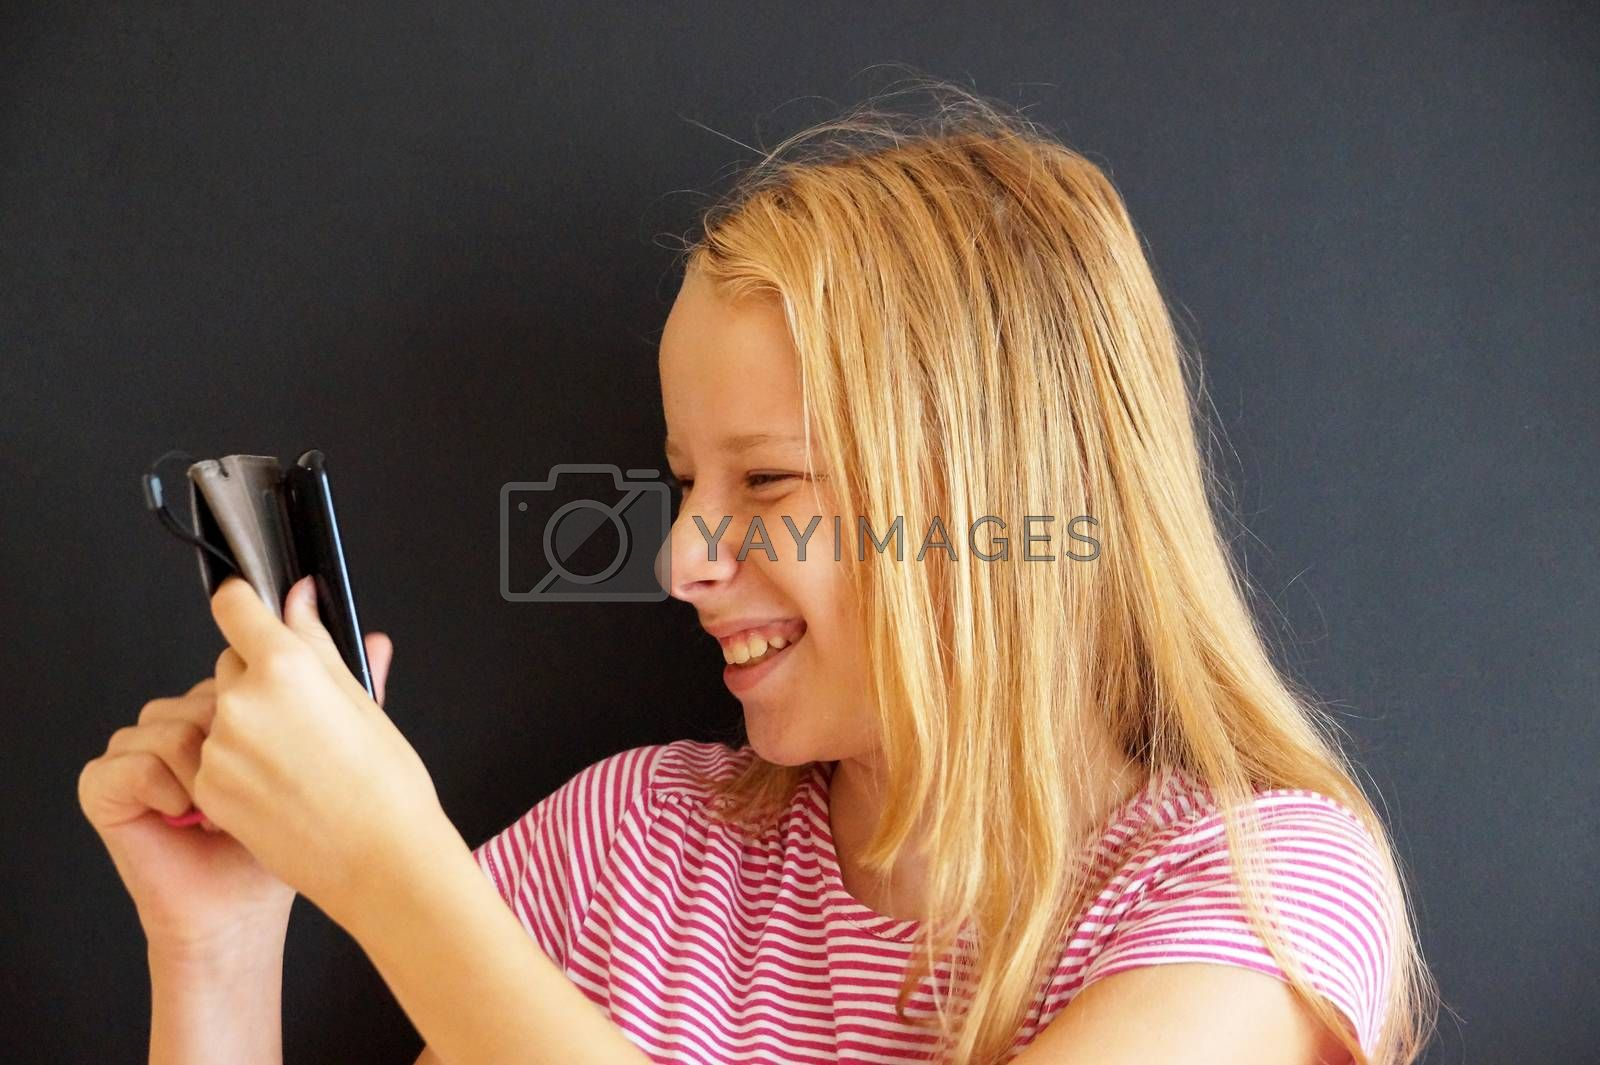 portrait of laughing teenage girl with phone on black background.